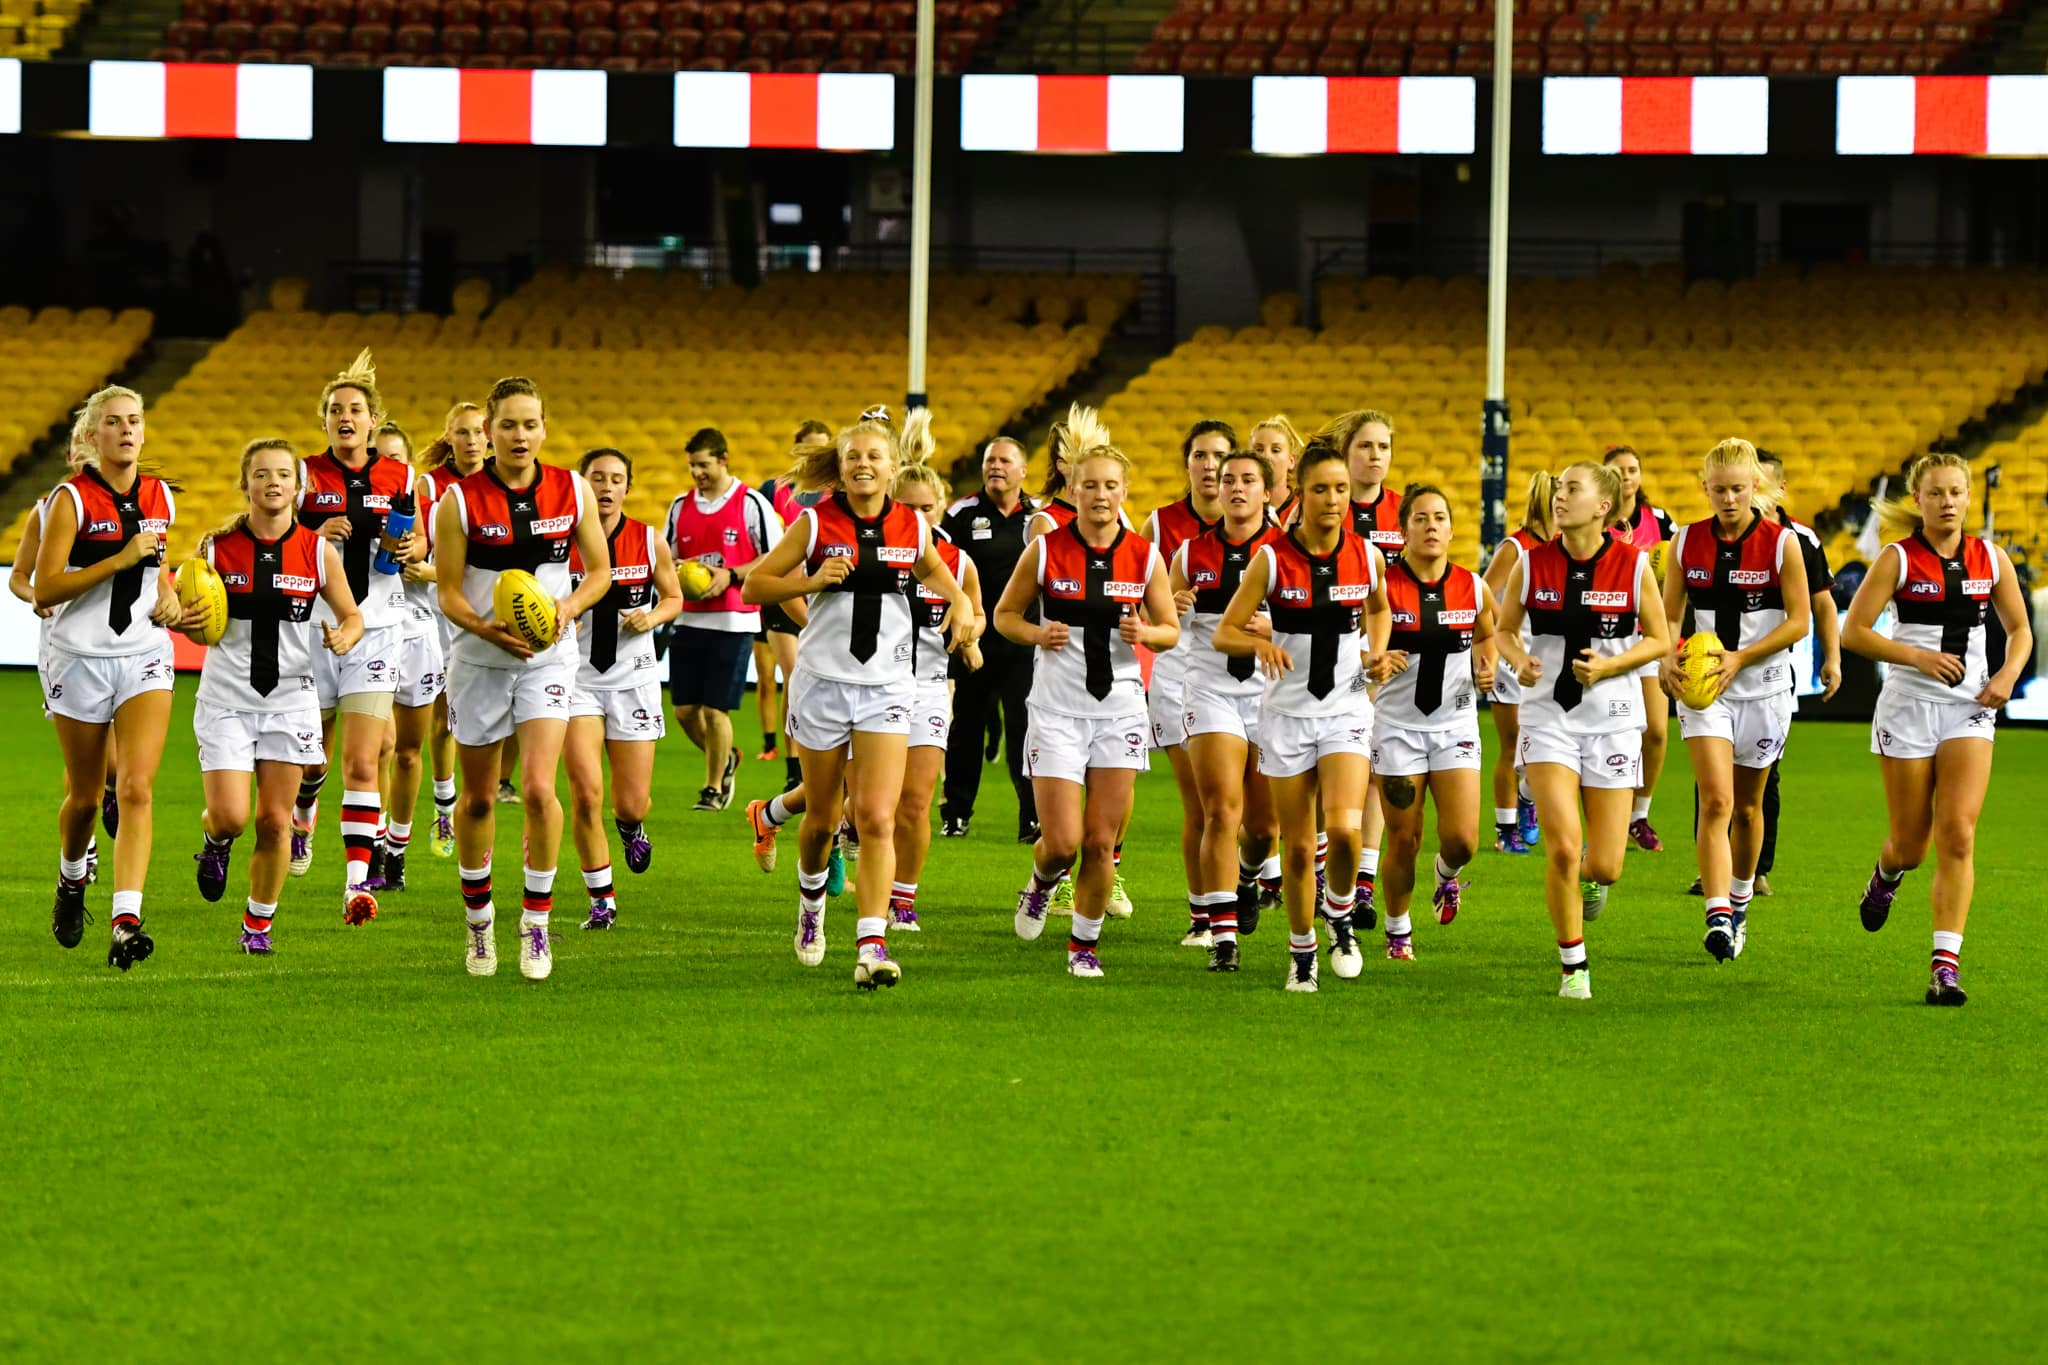 St Kilda Football Club will field a team in the VFL Women's Competition in 2018, in partnership with the Frankston Football Club.